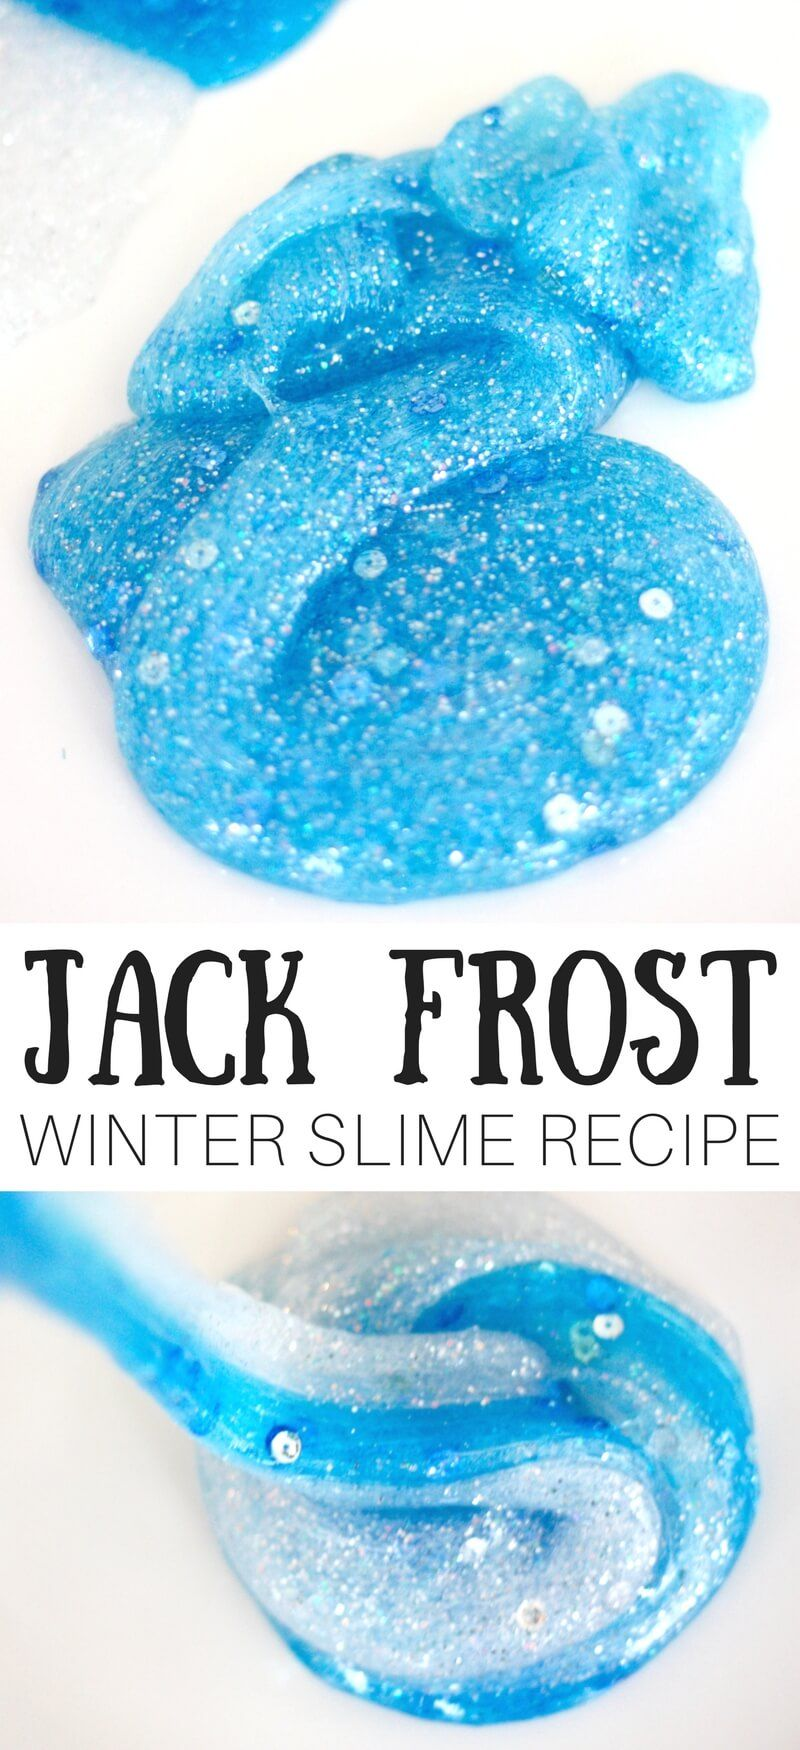 How To Make Winter Slime Recipe Winter Crafts For Kids Winter